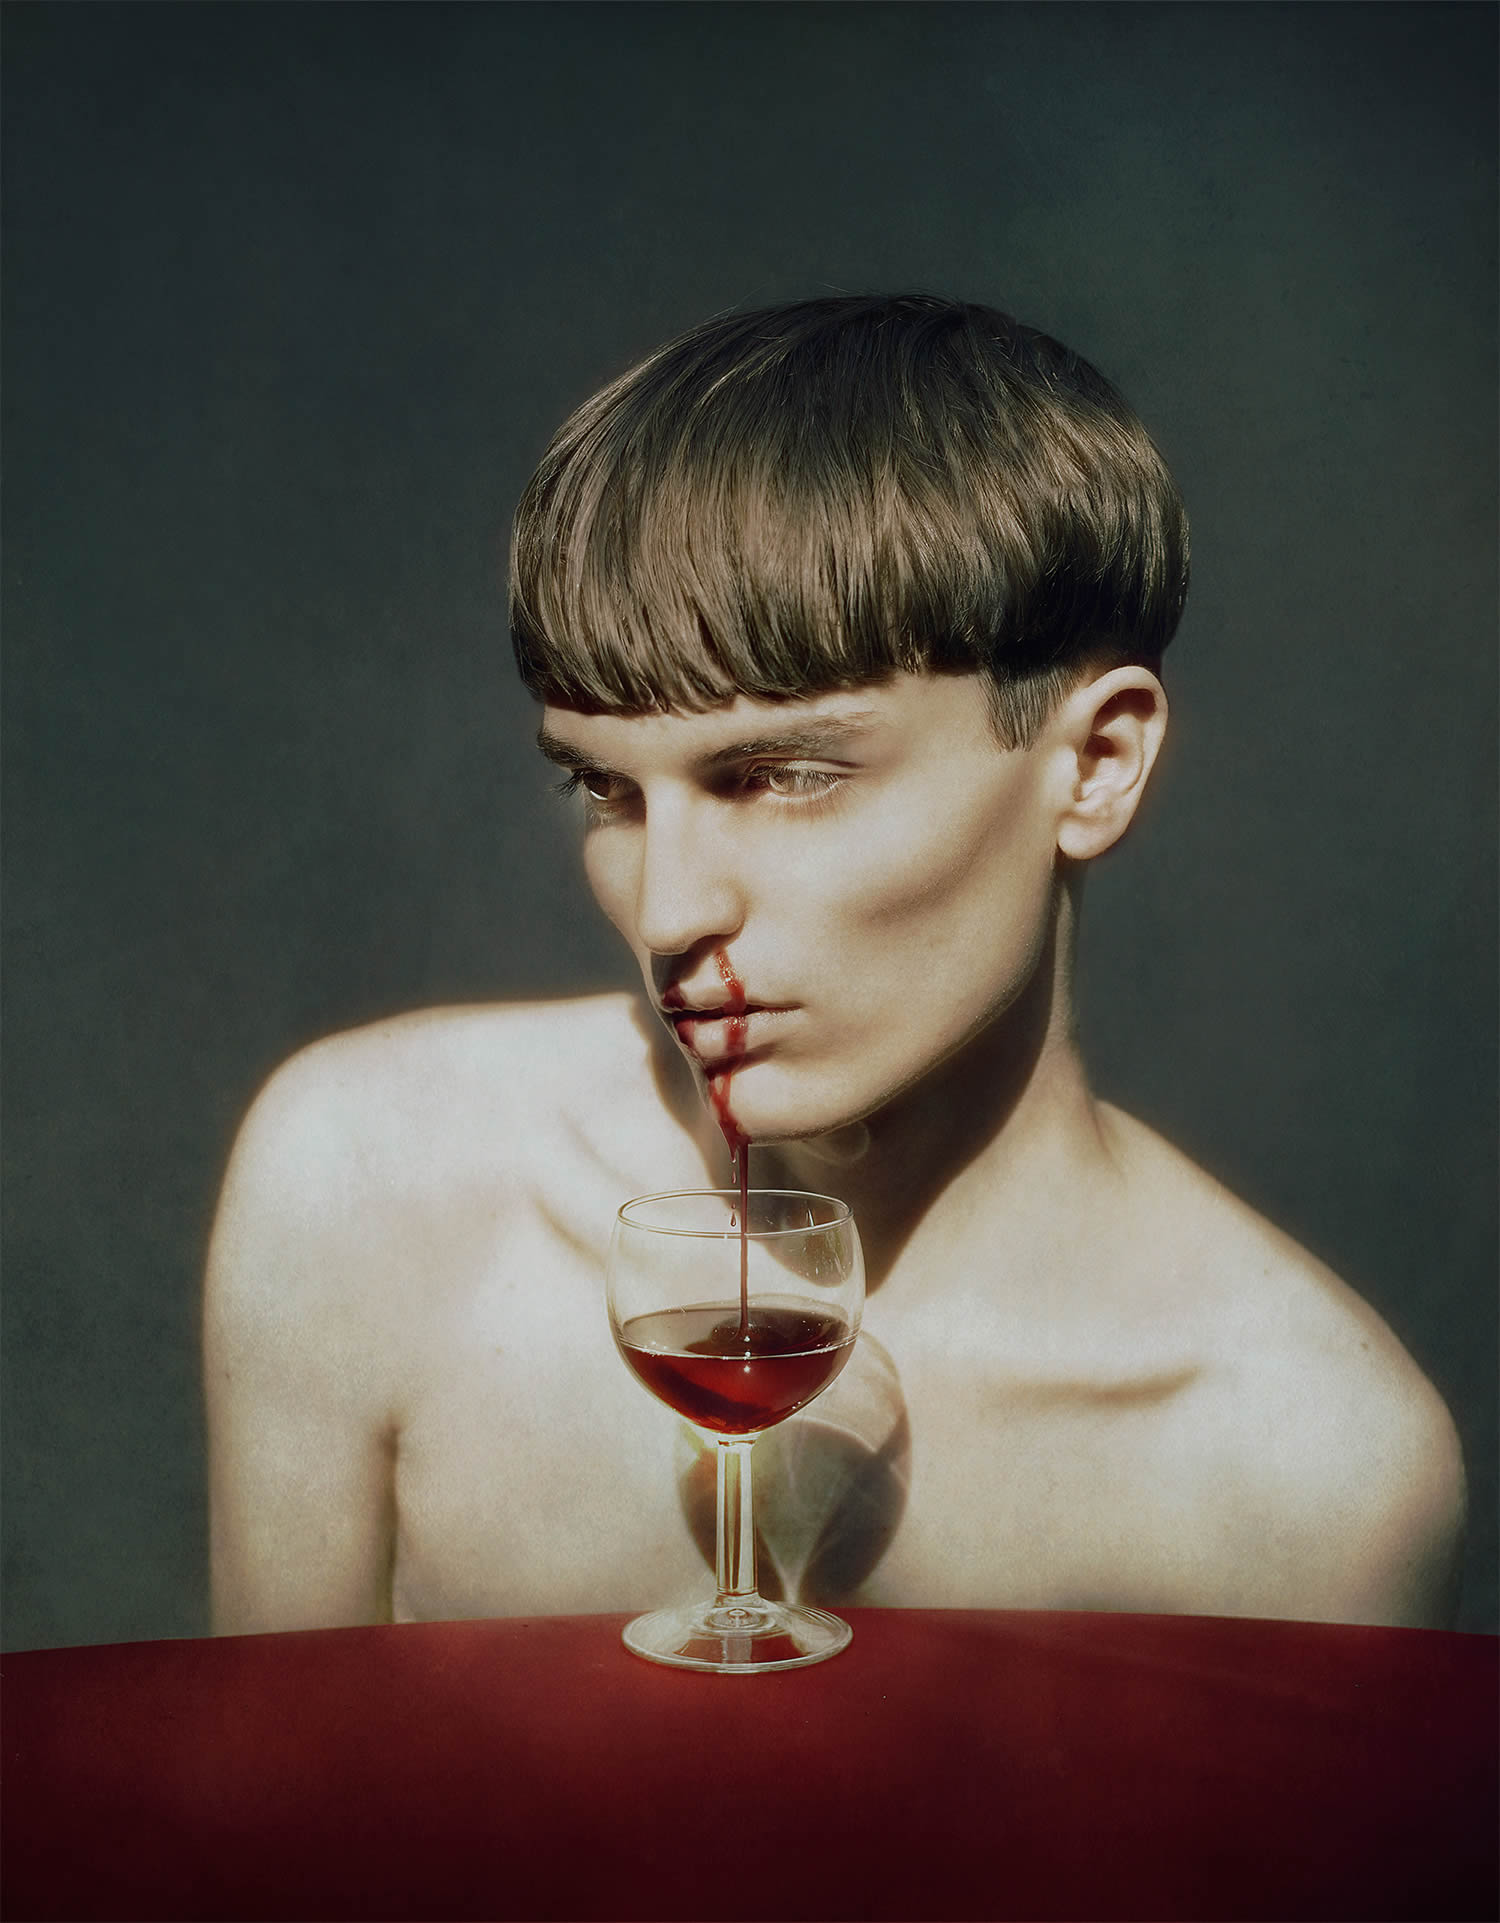 blood coming out of boy's nose to a glass wine, by Marwane Pallas